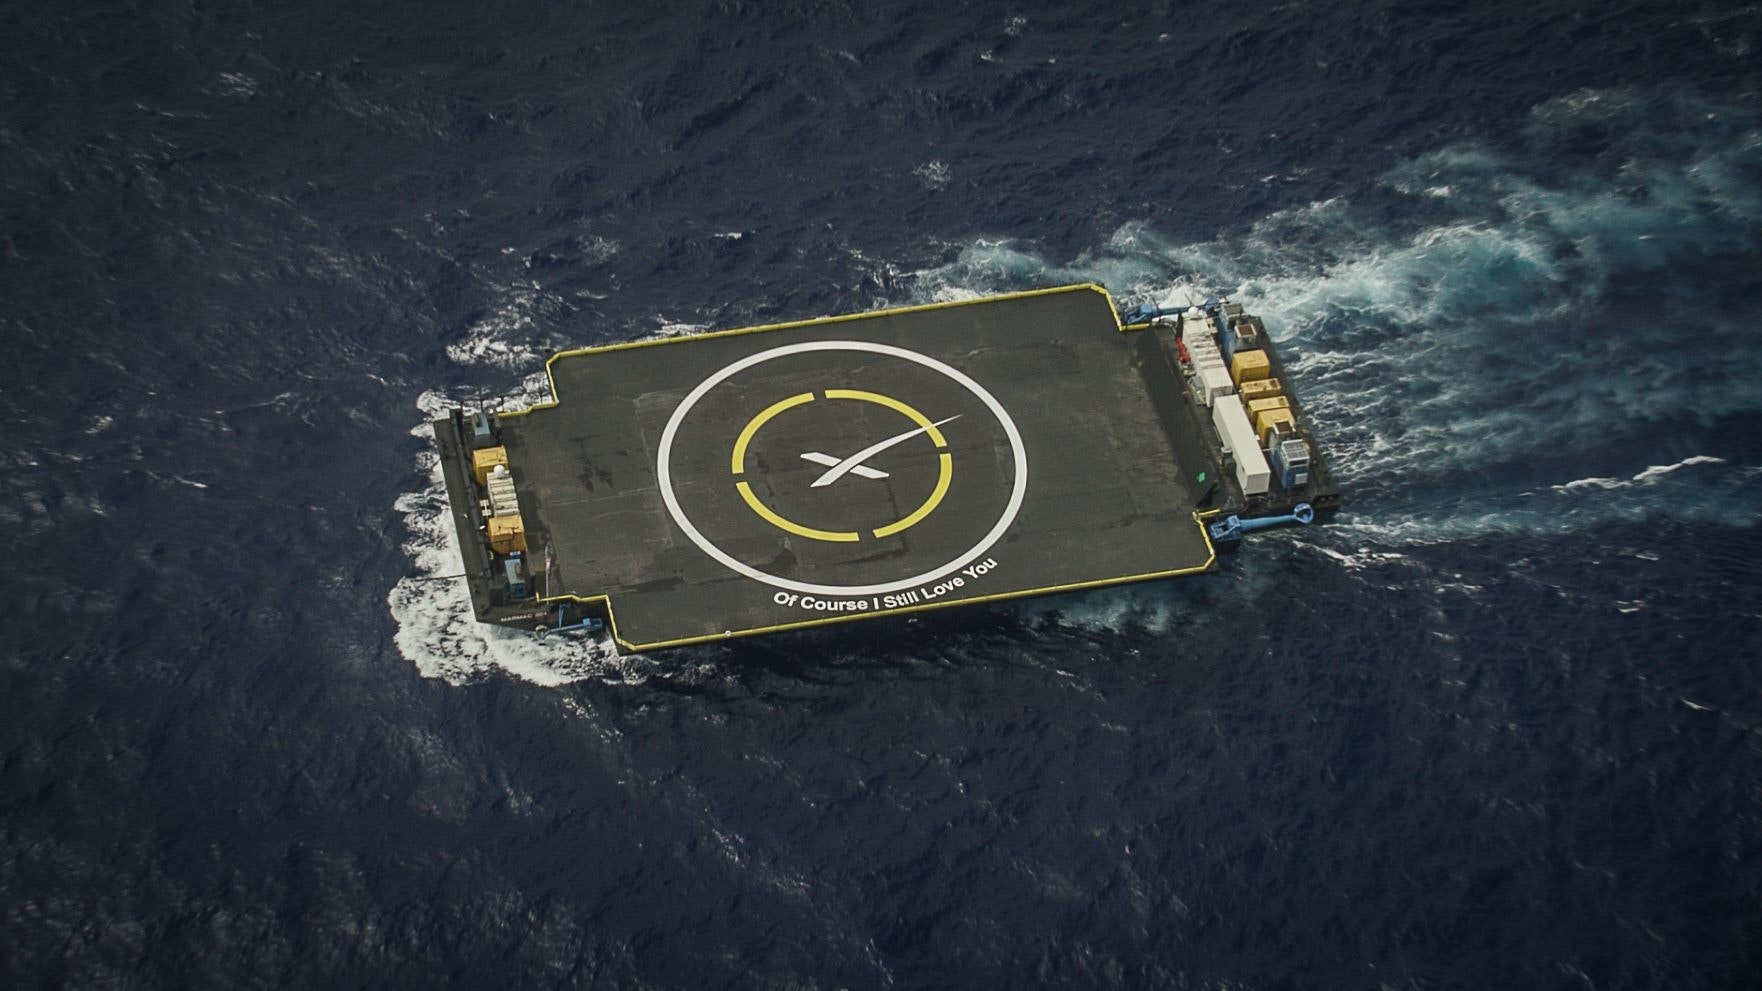 Autonomous spaceport drone ship, SpaceX, , Falcon 9, Falcon, SpaceX CRS-7, Rocket, Ship, Falcon 9 first-stage landing tests, Rocket launch, spacex of course i still love you, Space, Number, Logo